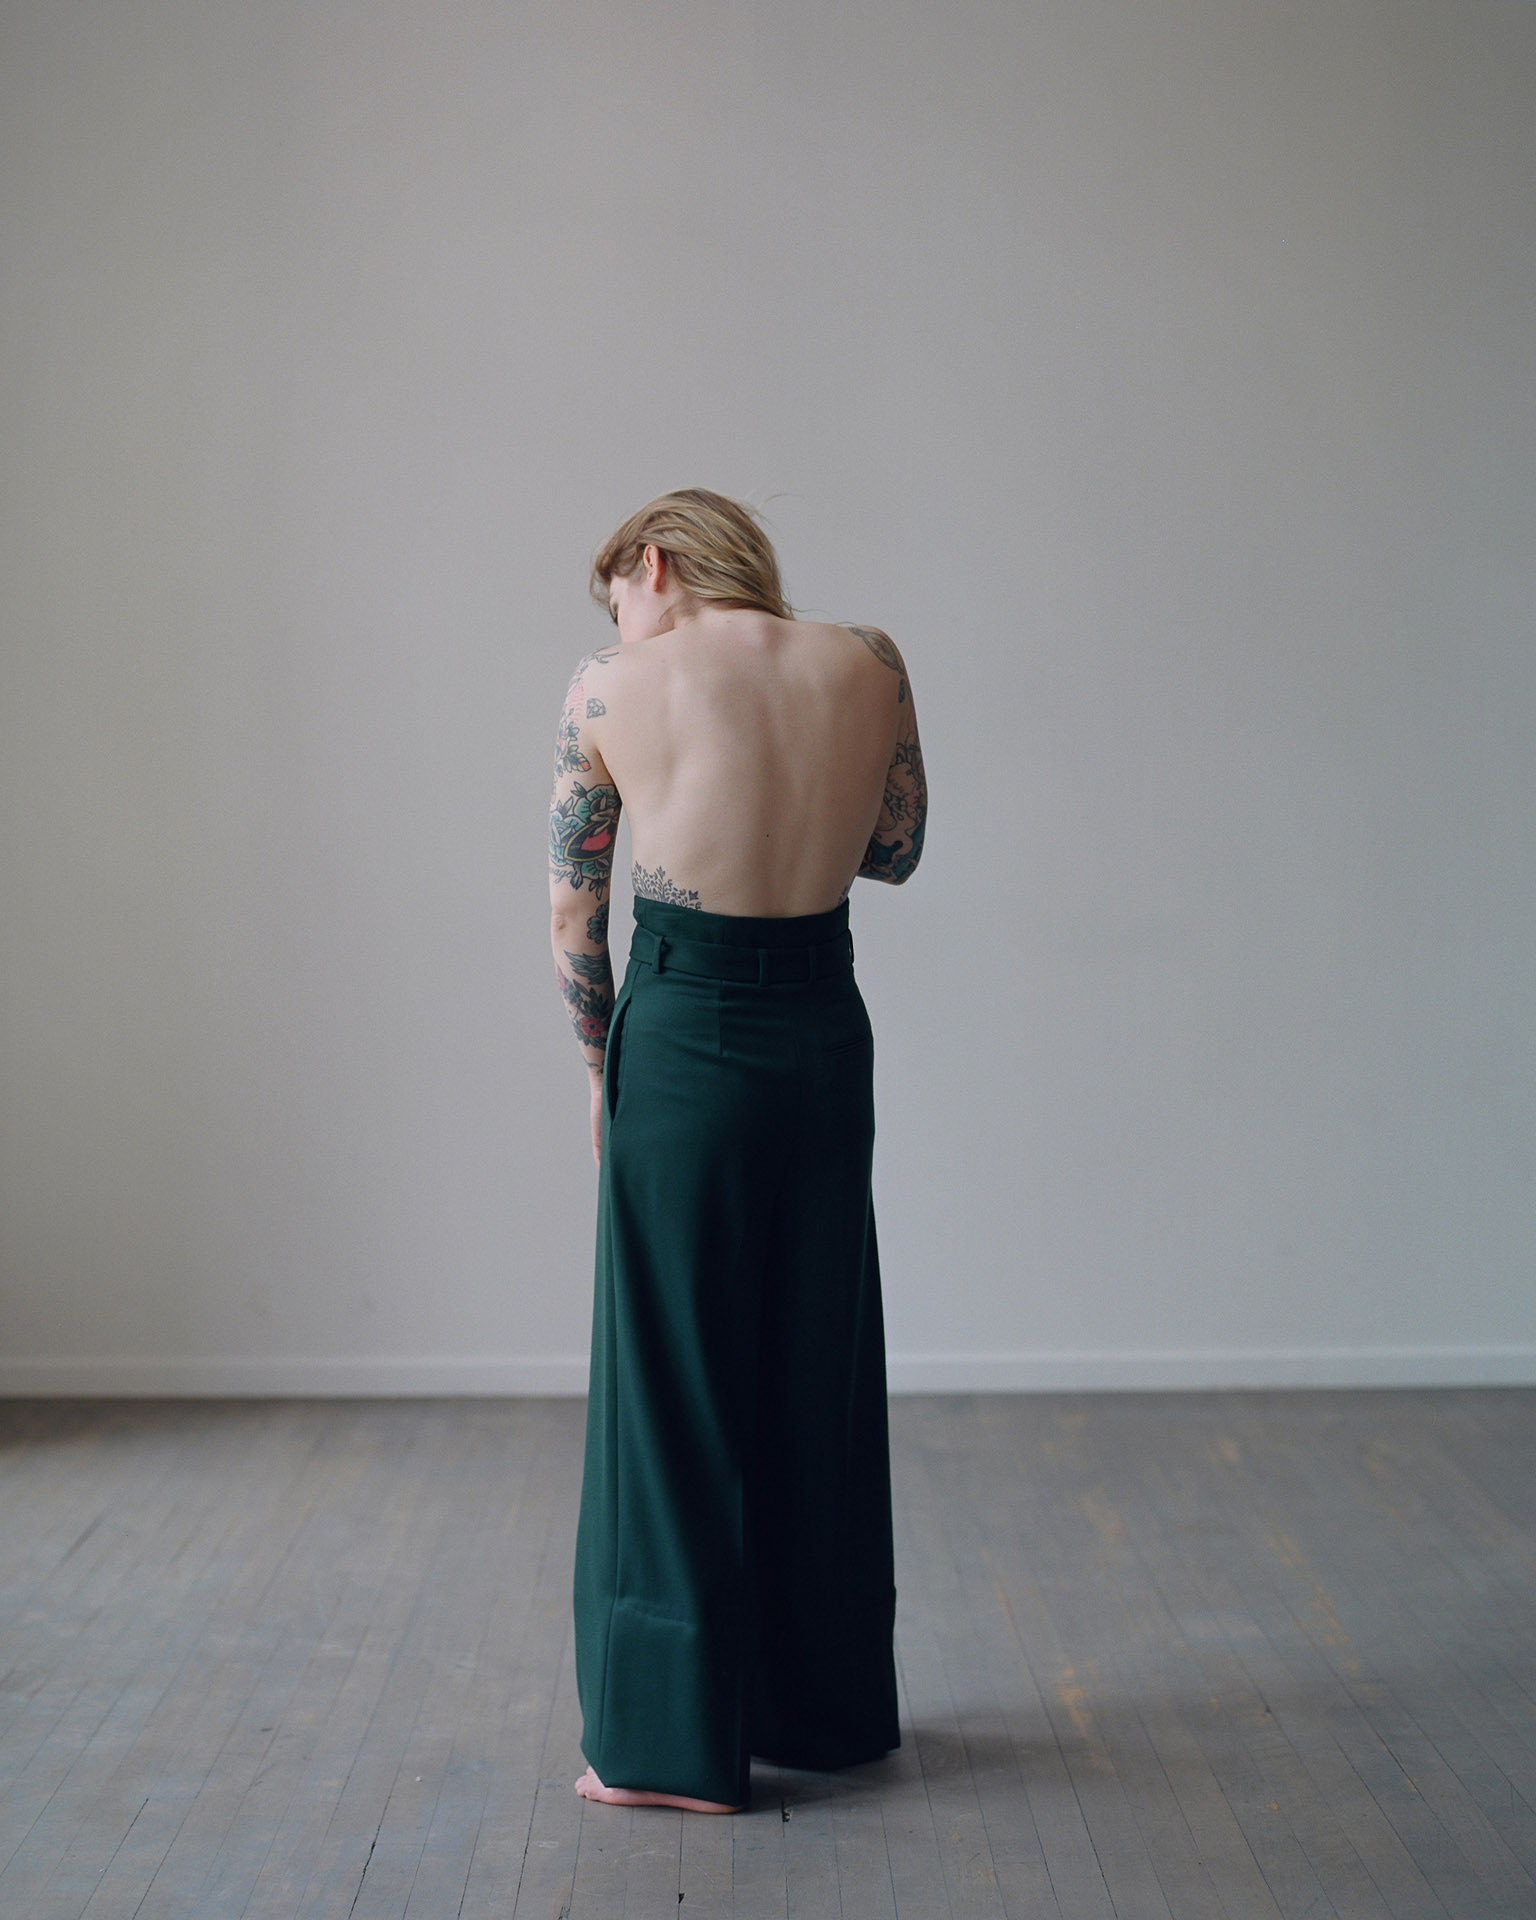 Coeur de Pirate turned around showing her bare back wearing large forest green pants by Maxyme G Delisle for Loulou Magazine